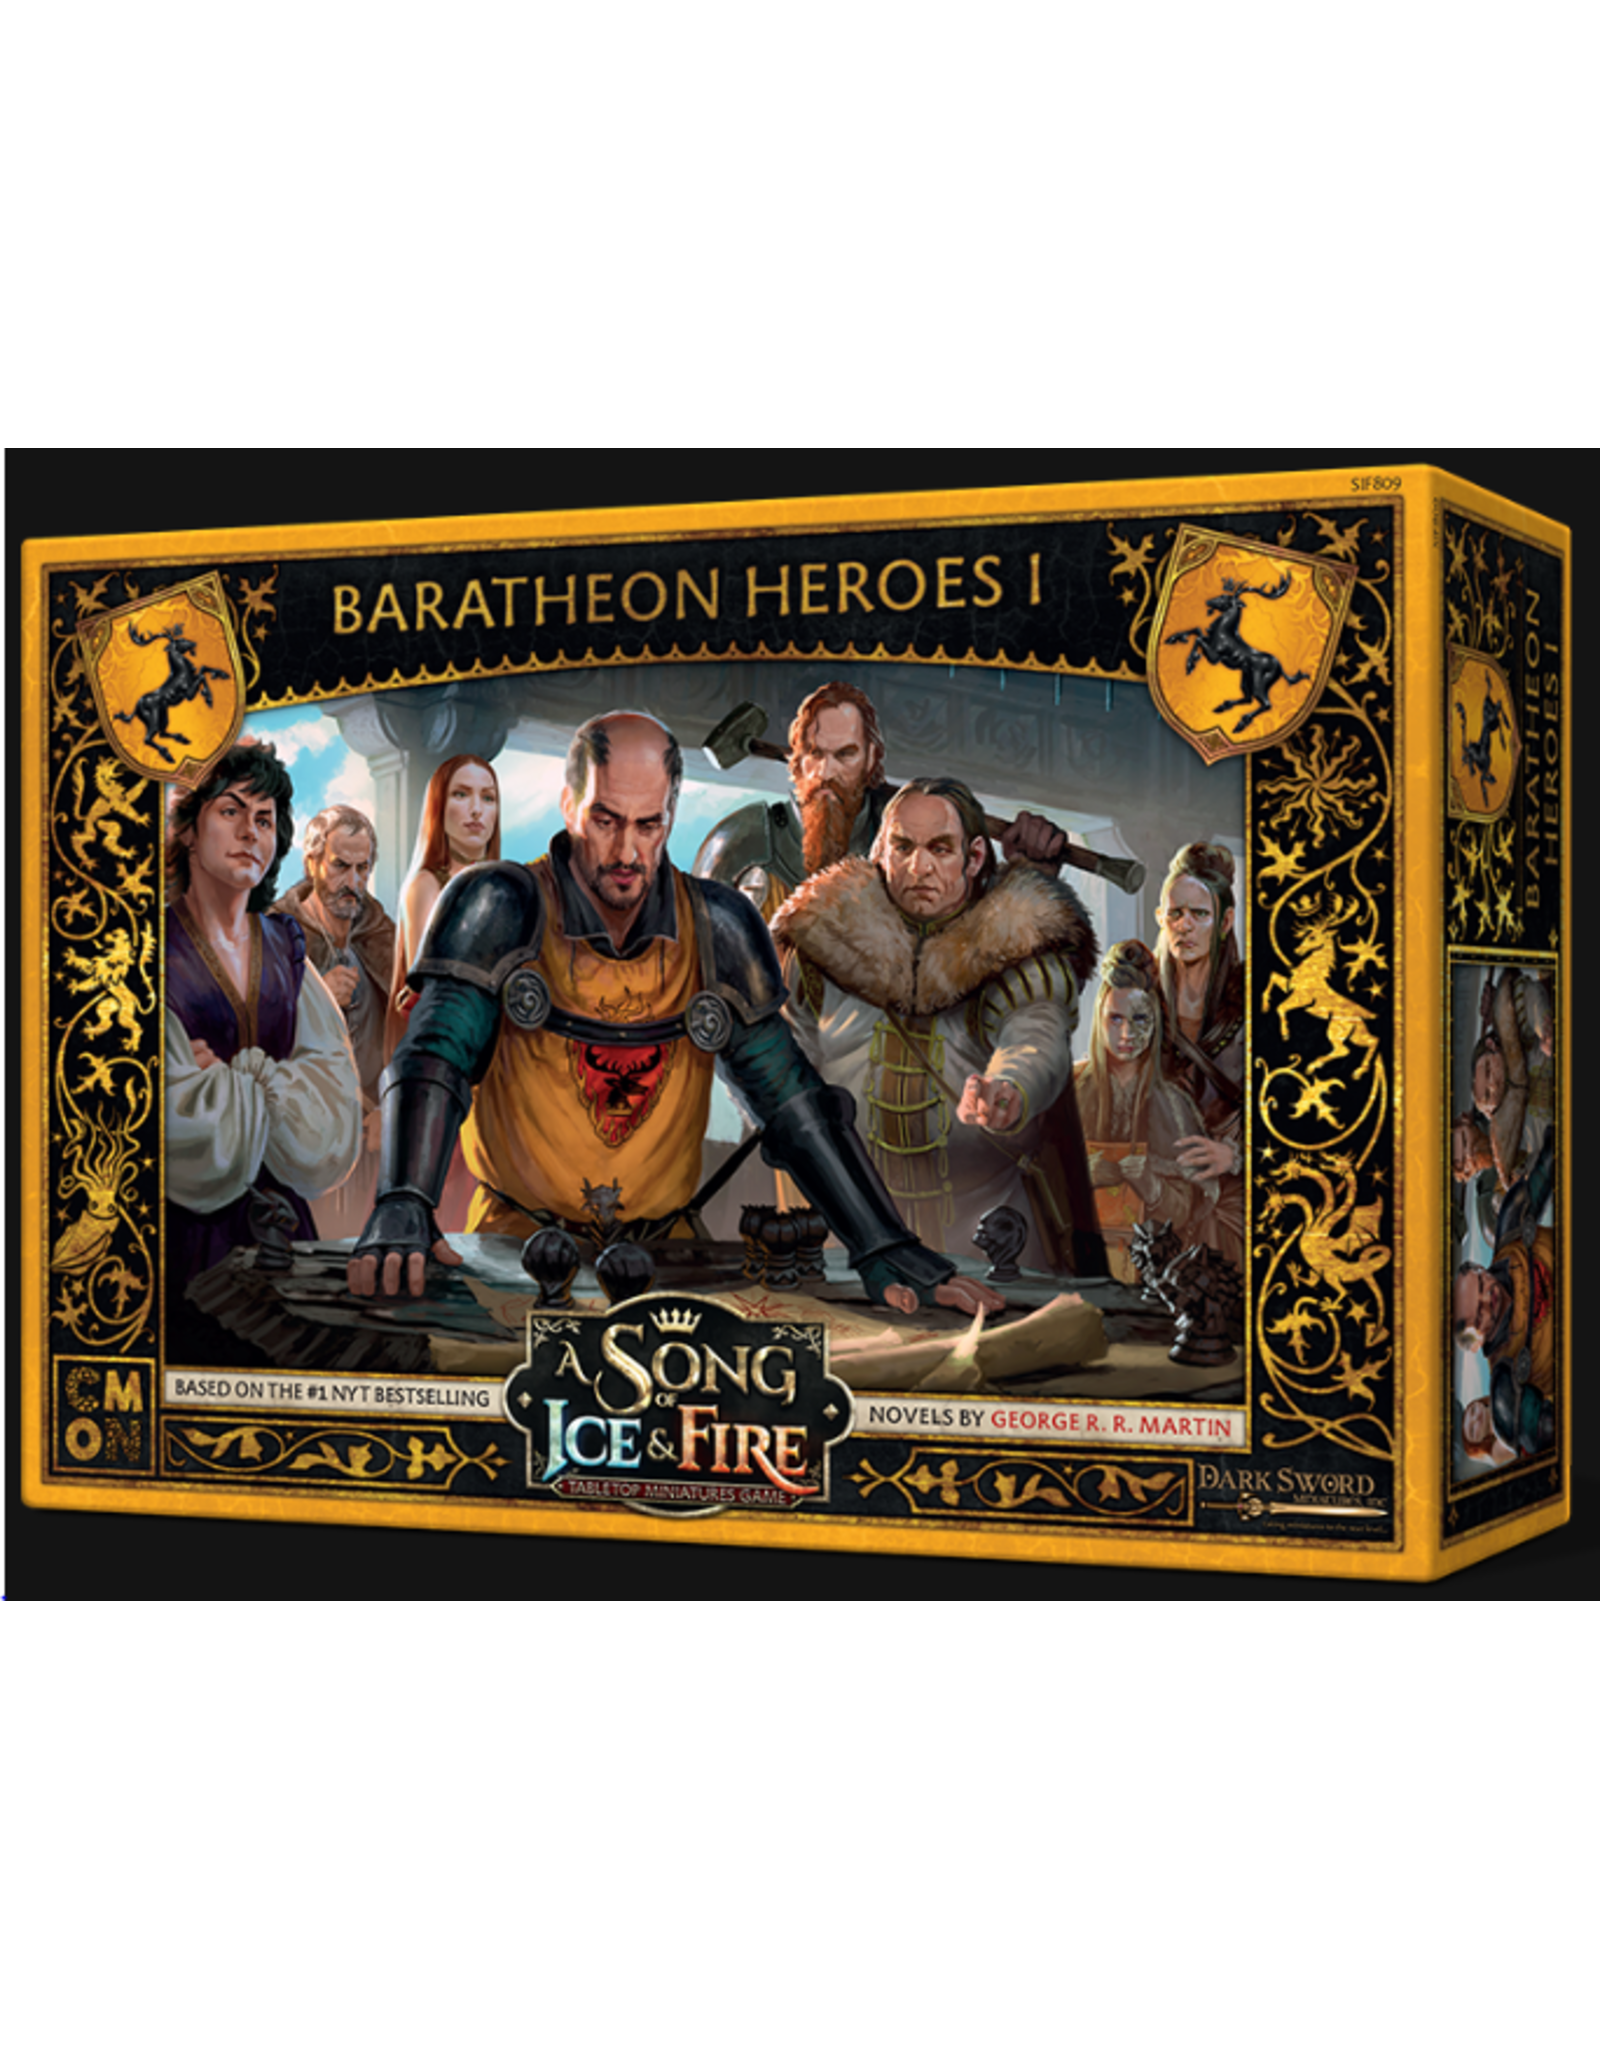 Cool Mini or Not A Song of Ice & Fire Tabletop Miniatures Game: Baratheon Heroes #1